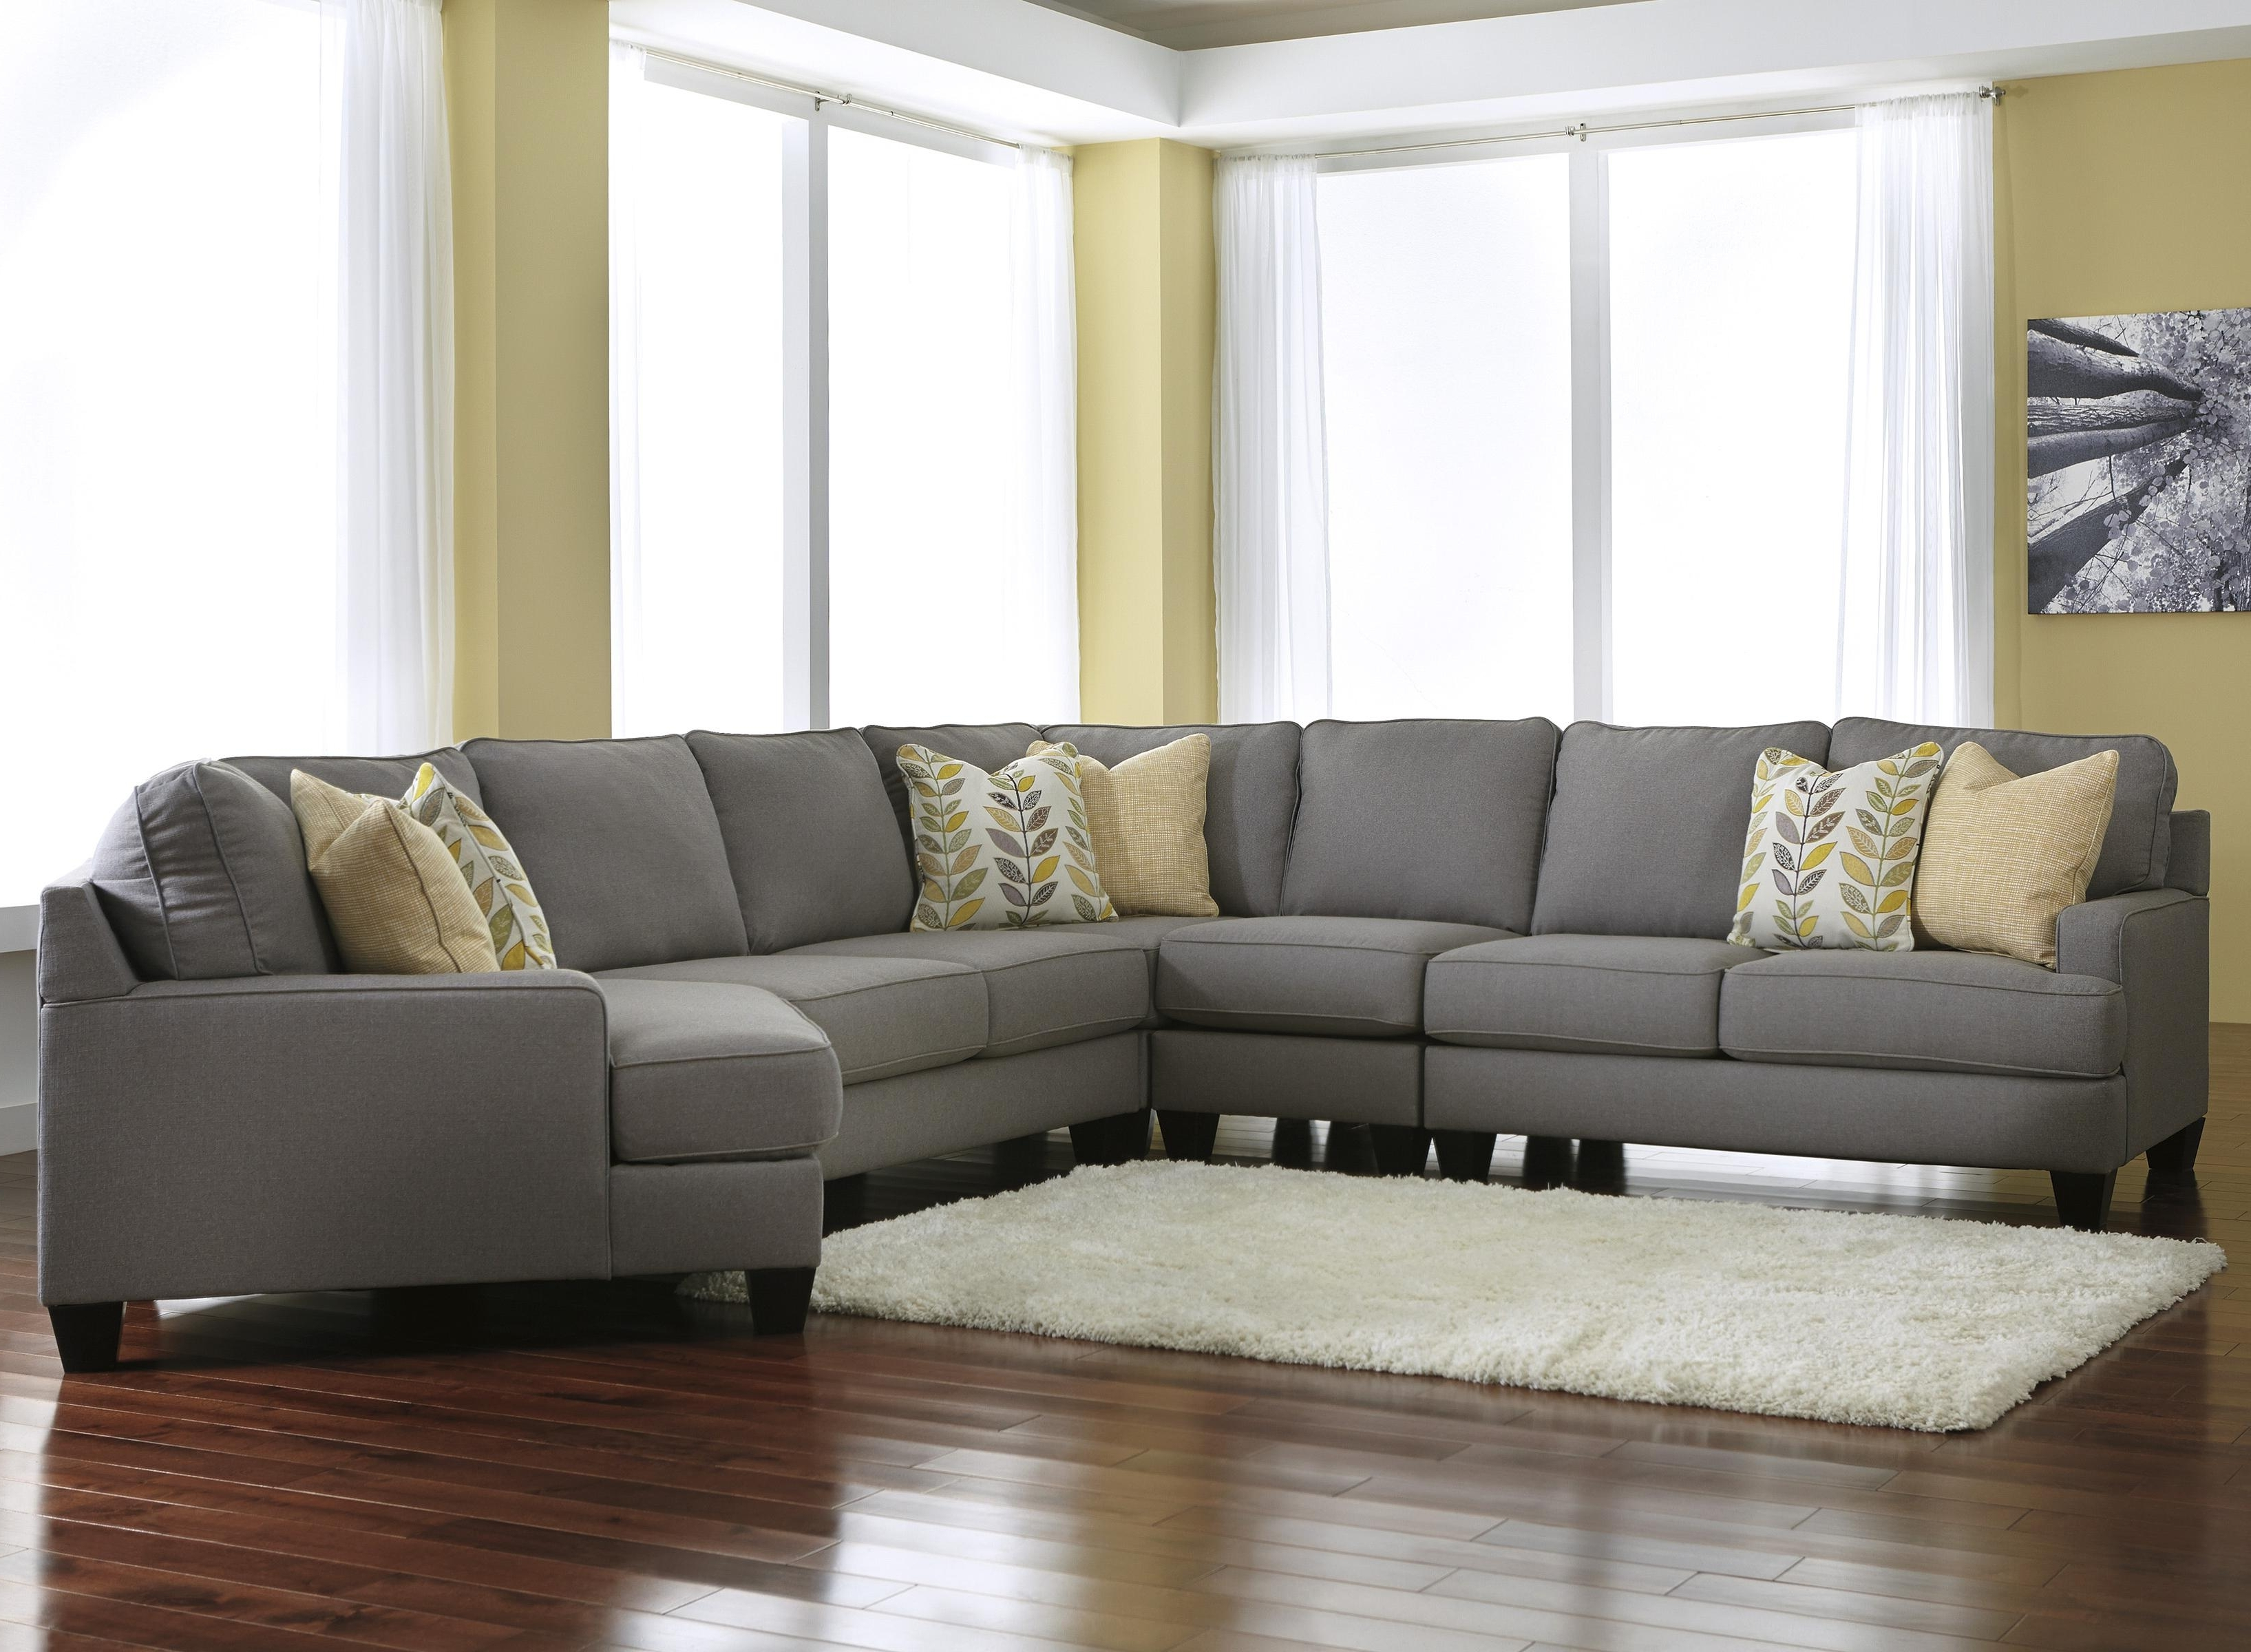 Favorite Eau Claire Wi Sectional Sofas Inside Chamberly – Alloy Modern 5 Piece Sectional Sofa With Right Cuddler (View 7 of 15)